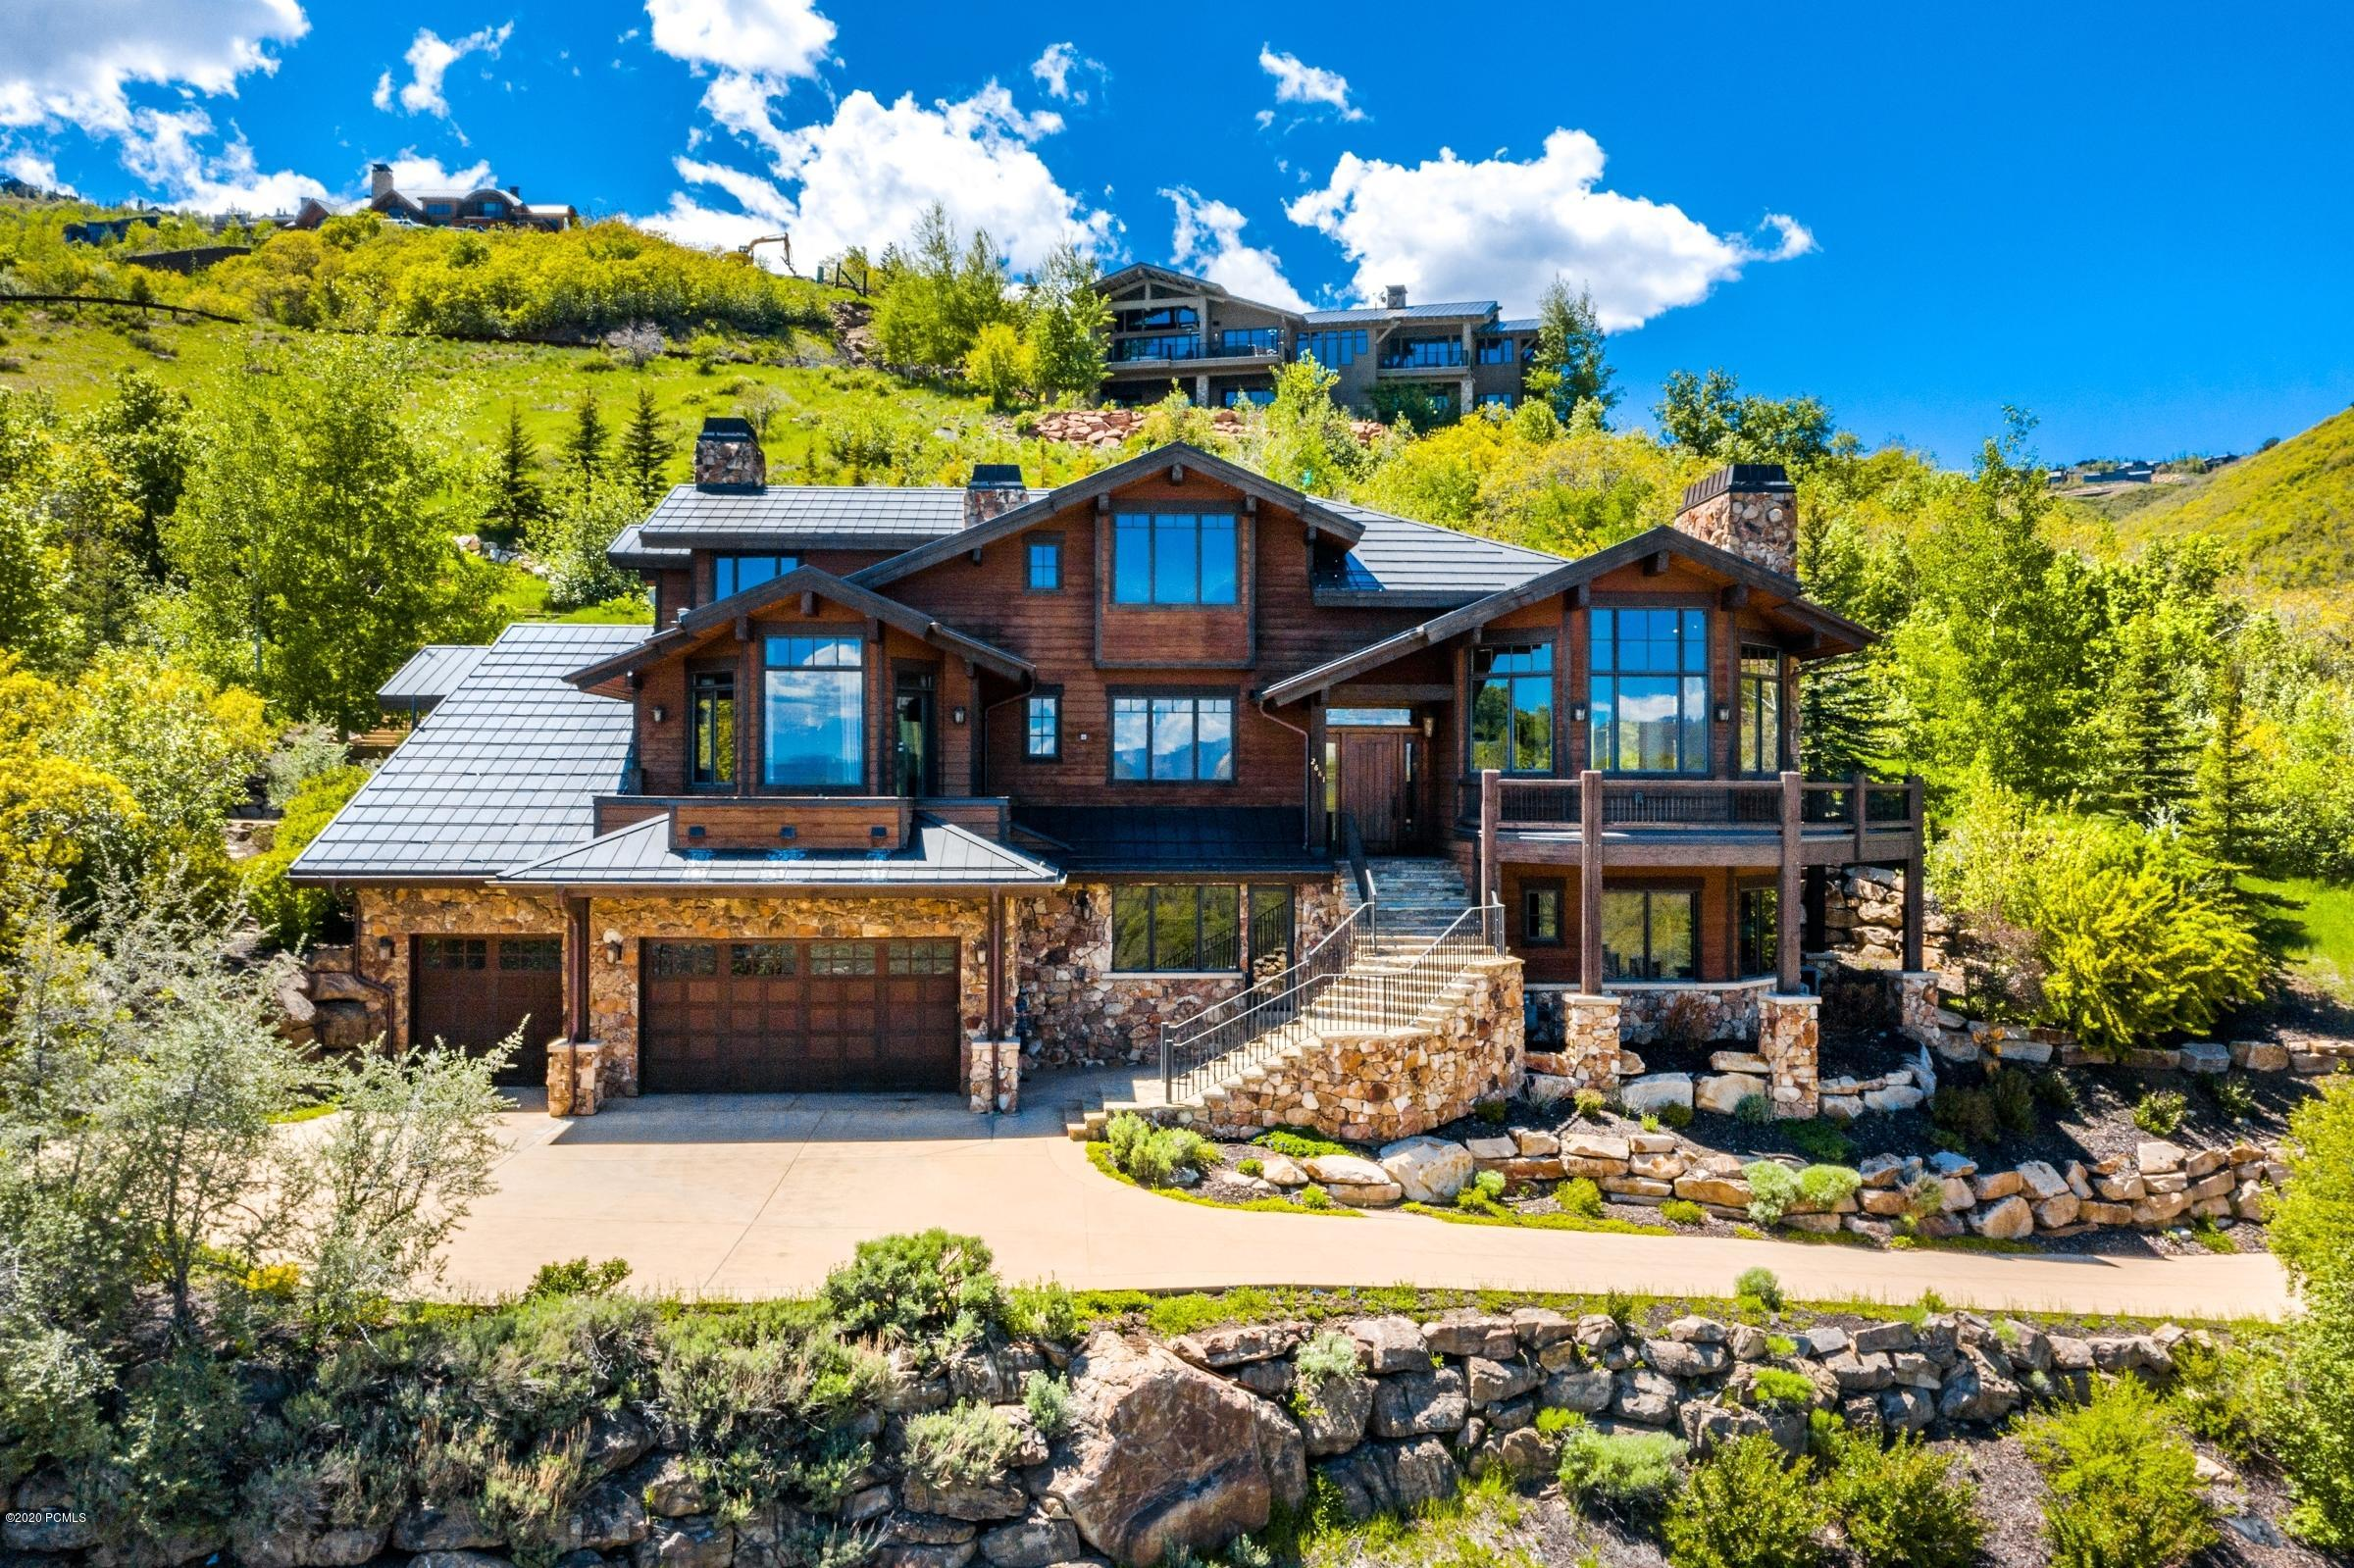 2681 Deer Hollow Road, Park City, Utah 84060, 5 Bedrooms Bedrooms, ,7 BathroomsBathrooms,Single Family,For Sale,Deer Hollow,20190109112430415765000000